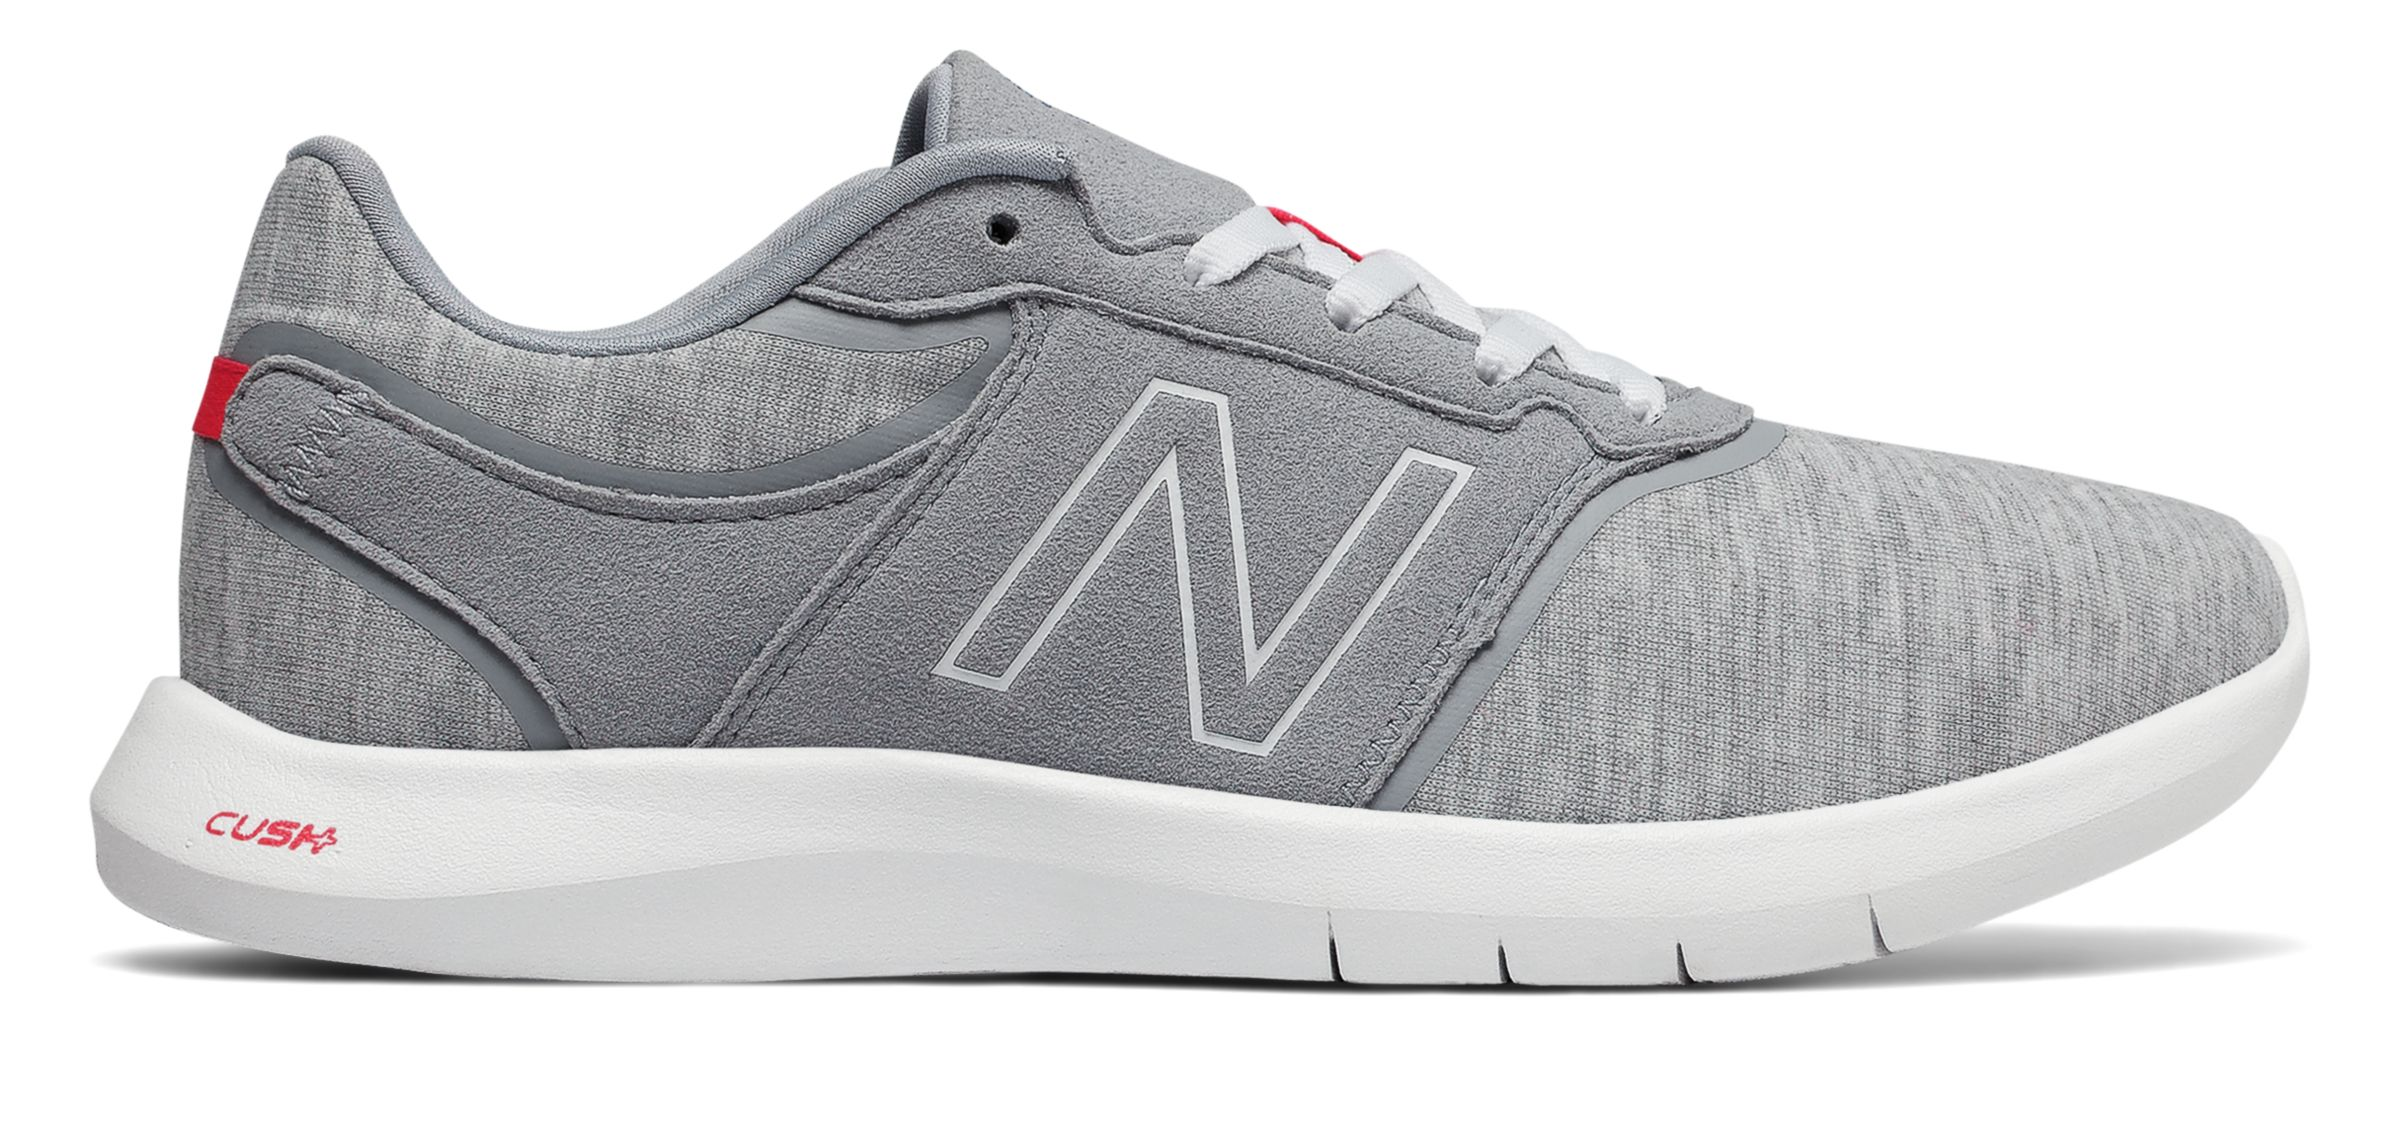 Details about New Balance Women's 415 Shoes Grey with White